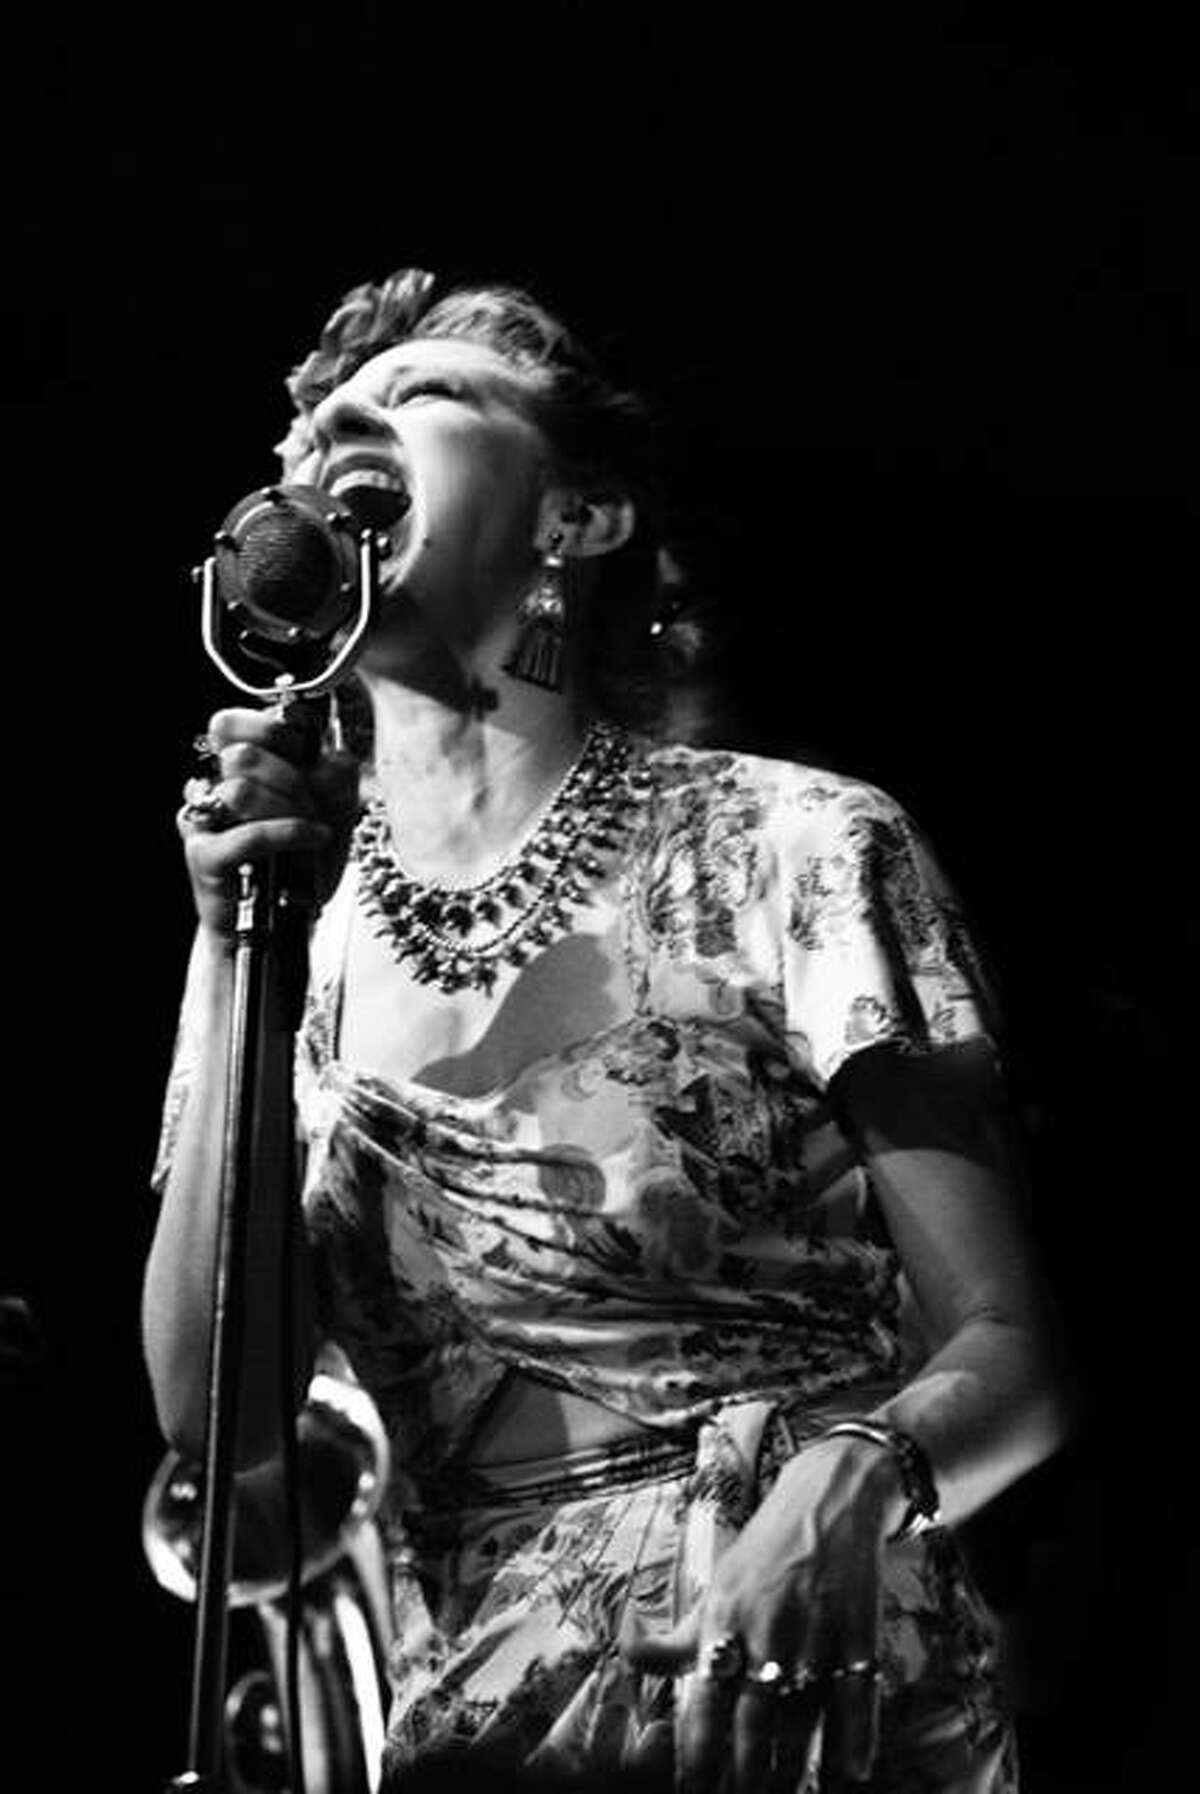 Miss Jubilee's vocalist, Valerie Kirchhoff, sings the band's one-of-a-kind repertoire that includes jazz, swing, and rhythm and blues, backed by a horn-fueled rhythm section, with music reminiscent of the swinging high-energy blues bands of the 1940s and 1950s, as well as the hot jazz and R&B of the 1920s and 1930s.